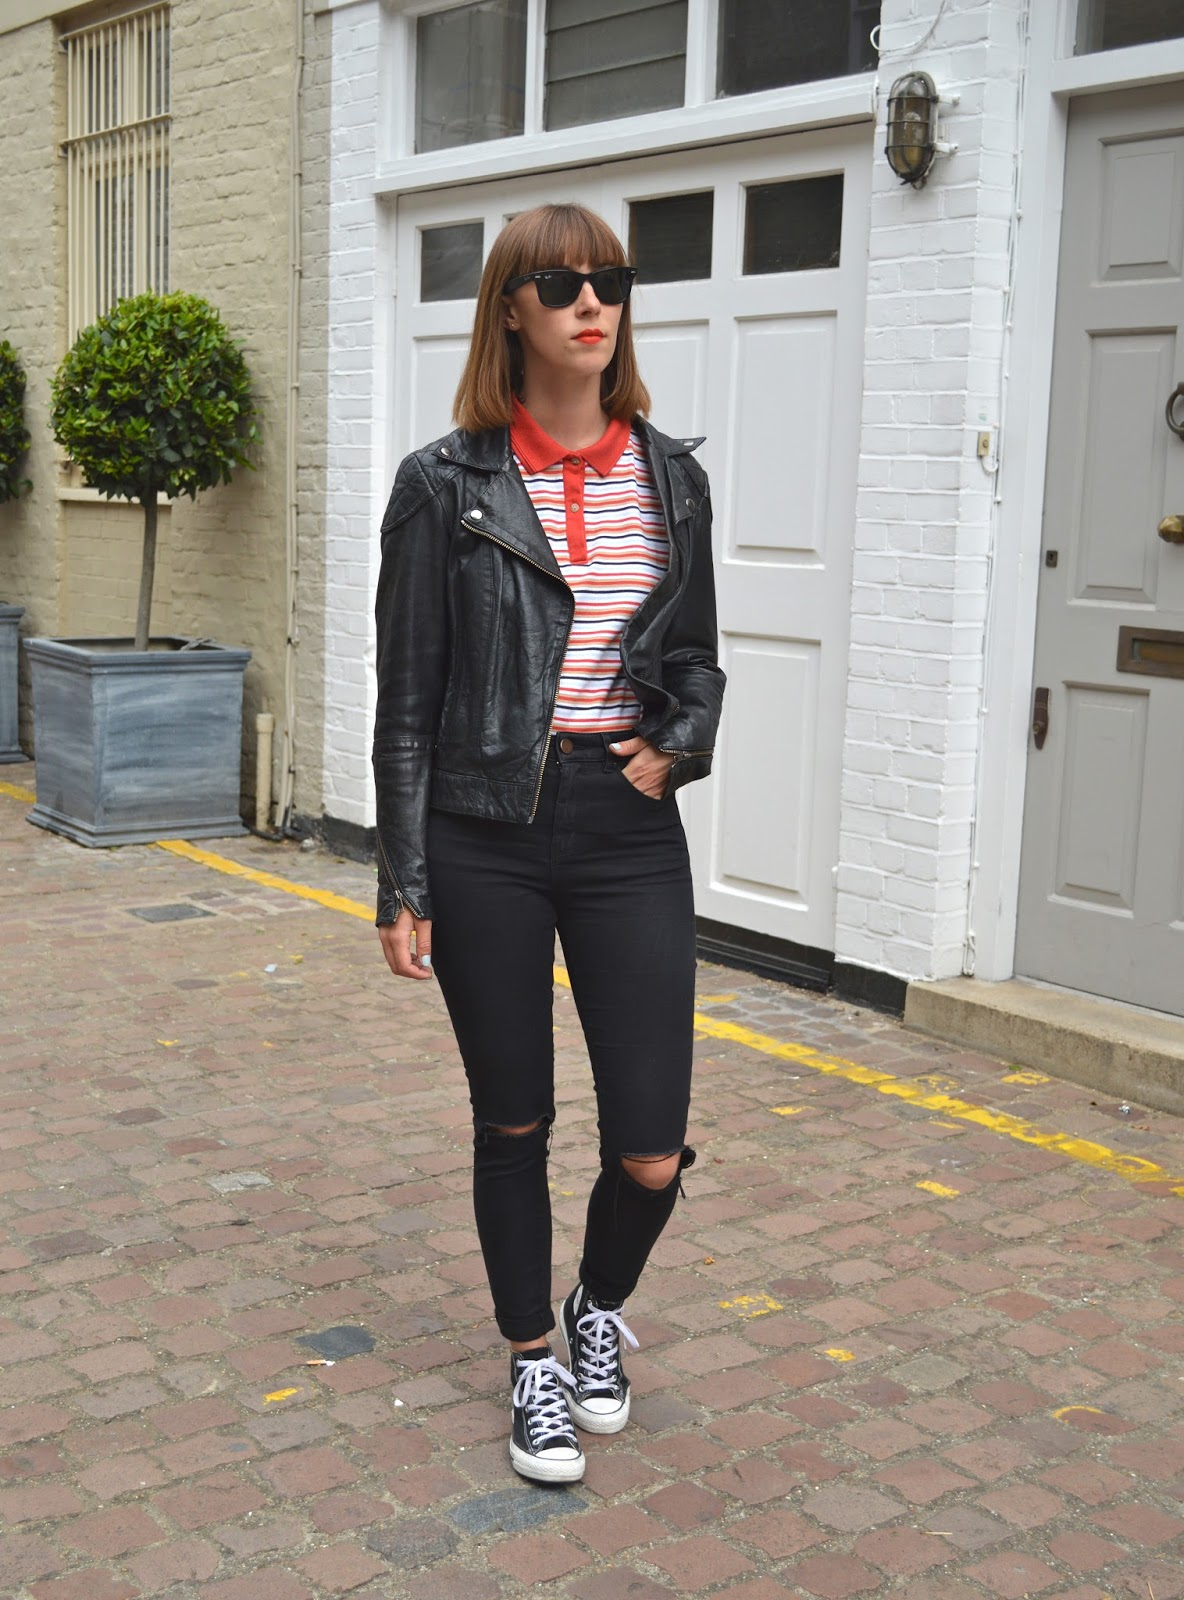 ASOS leather jacket, striped polo shirt and ASOS ripped jeans